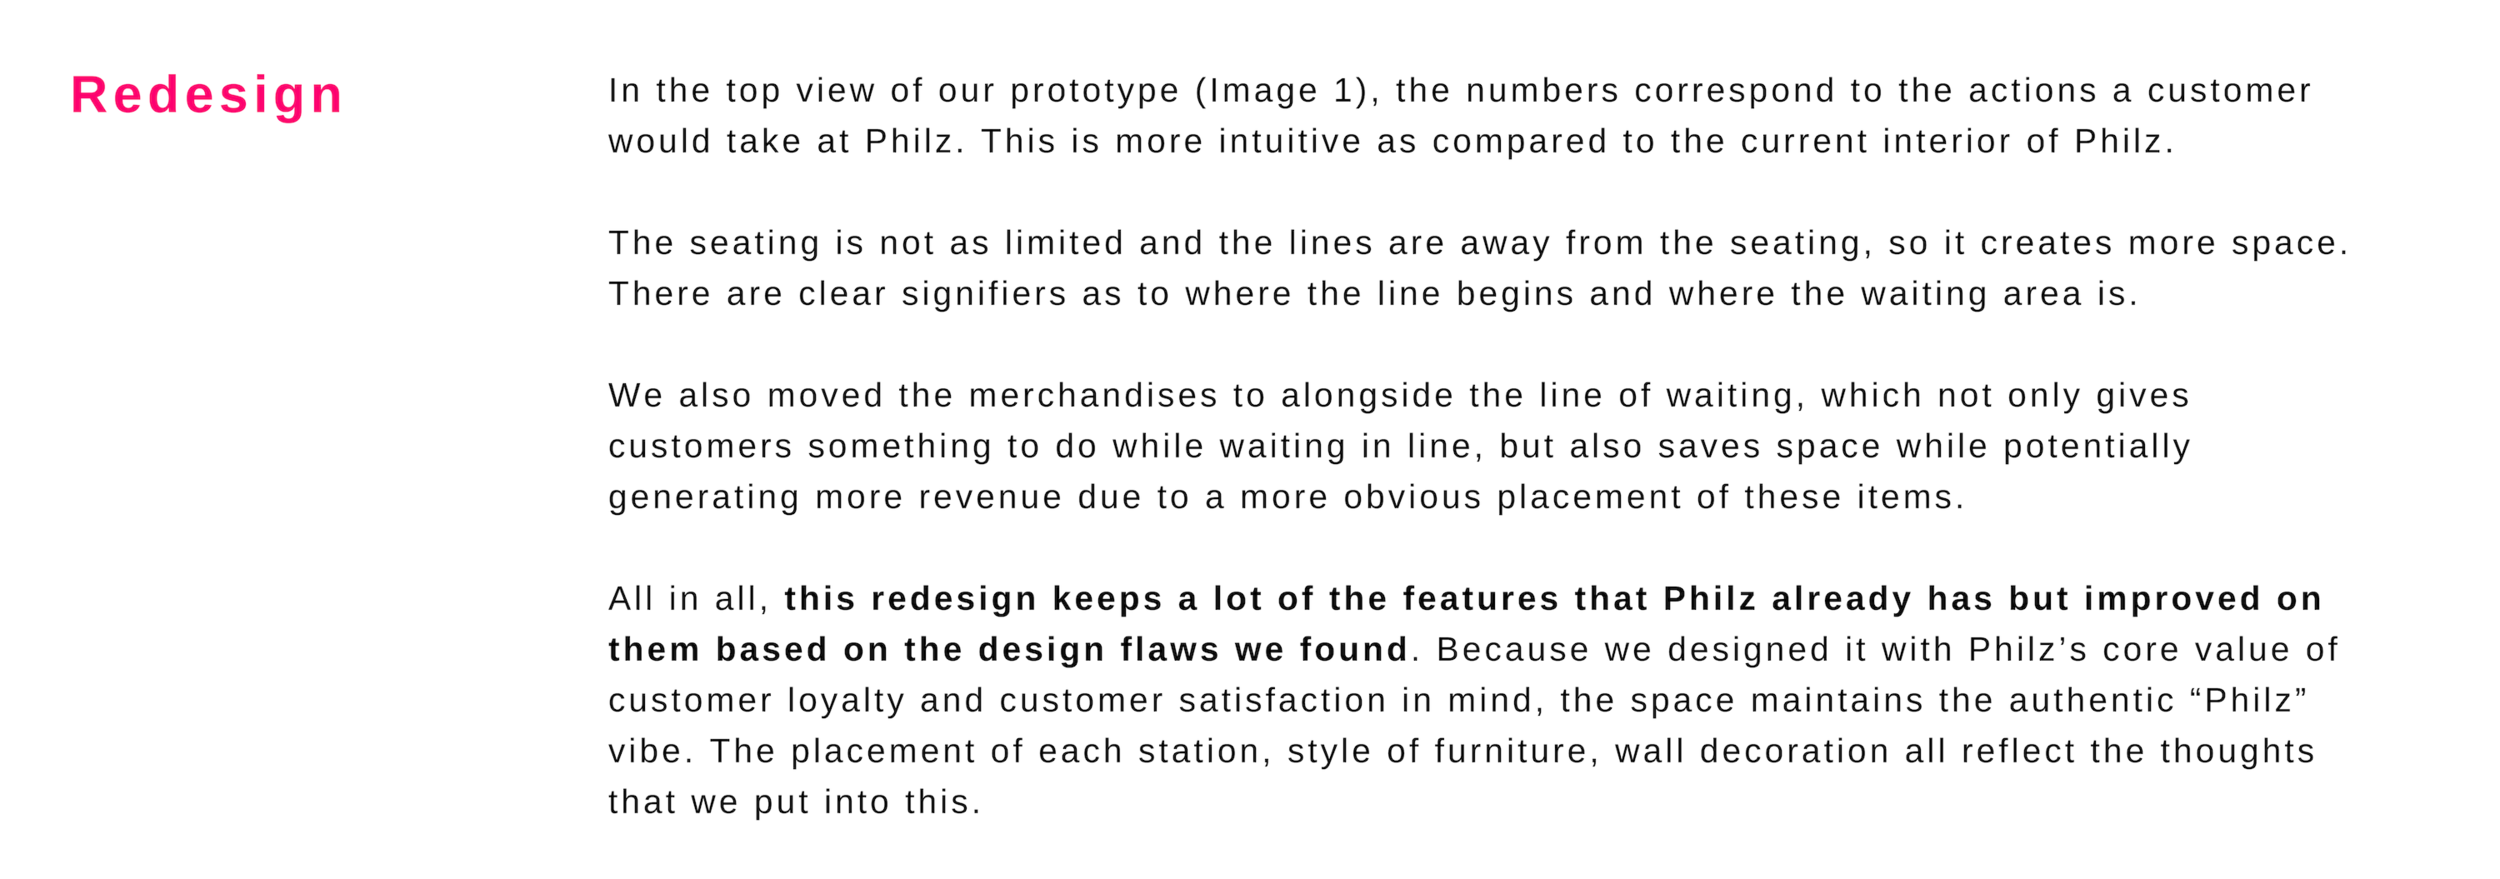 PHILZ redesign2.png